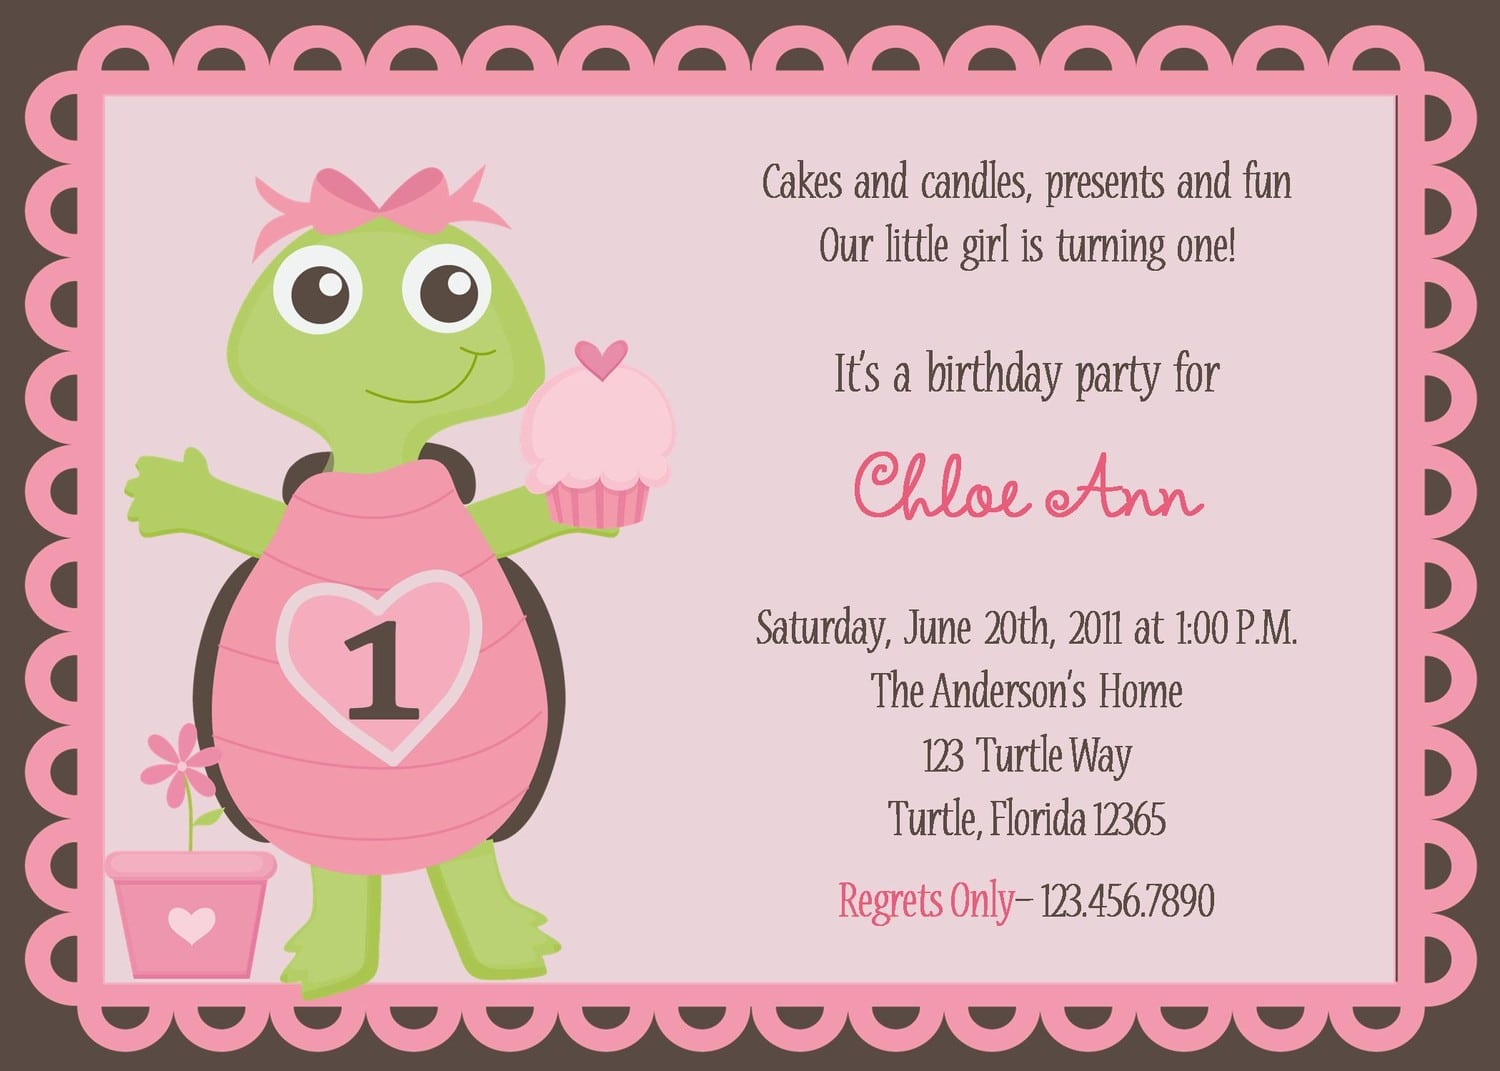 Adorable Pink Turtle Birthday Party Invitations